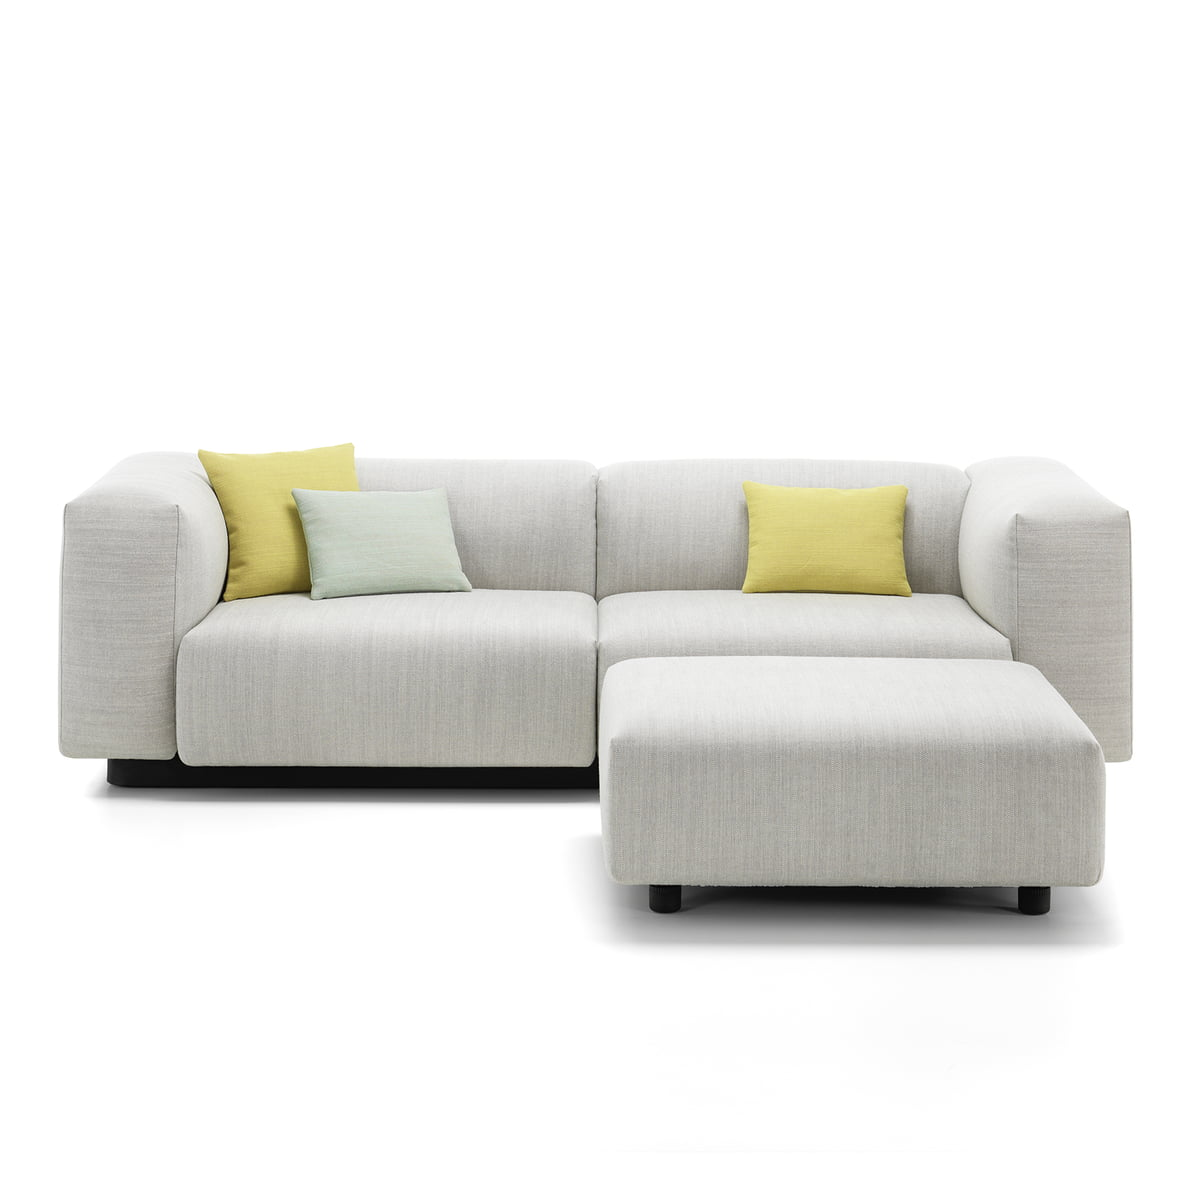 vitra sofa modular vintage danish uk soft 2 seater from in the connox shop